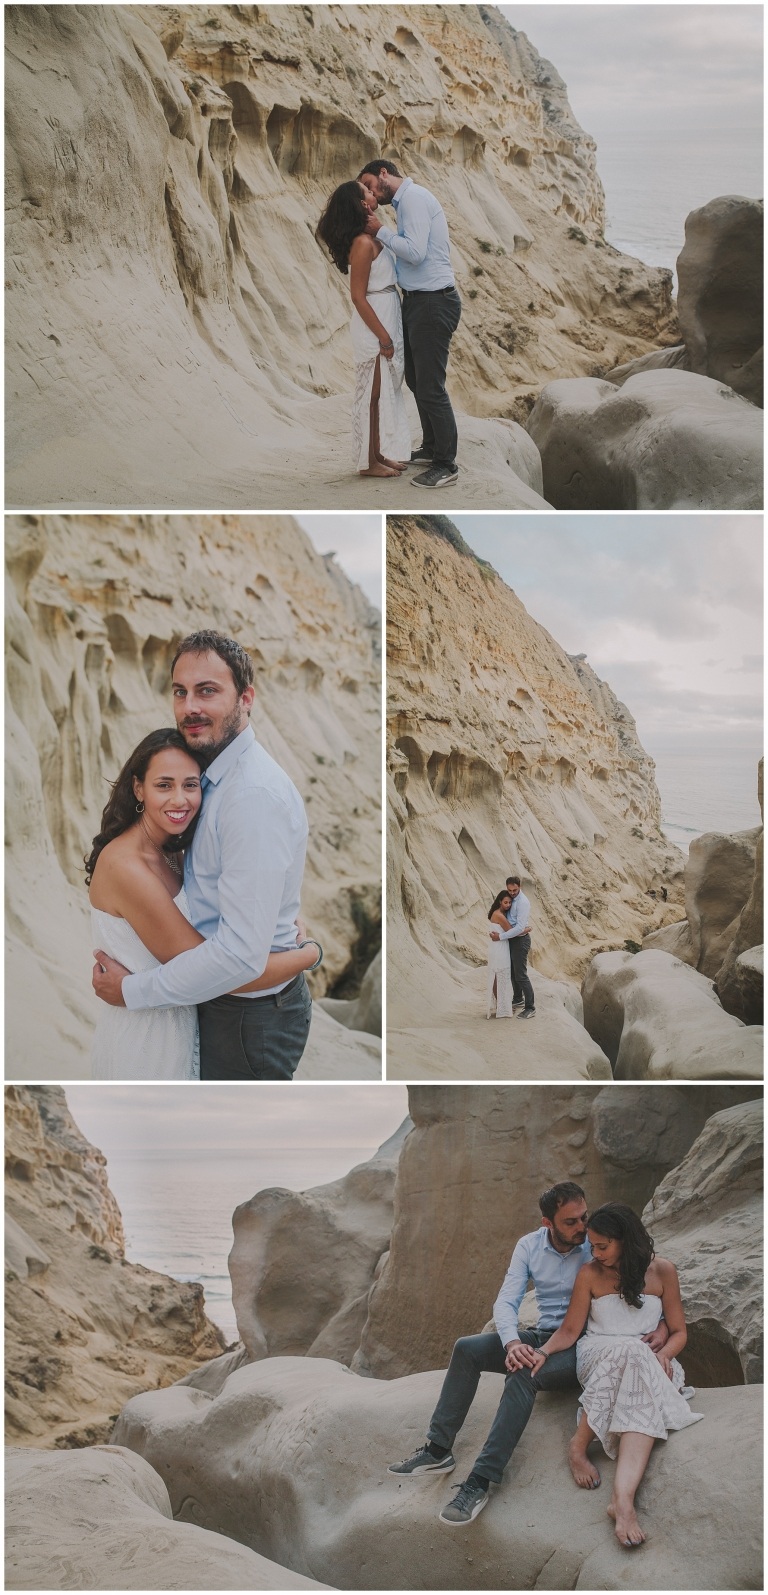 Wedding Photography Prices In California: San Diego Engagement